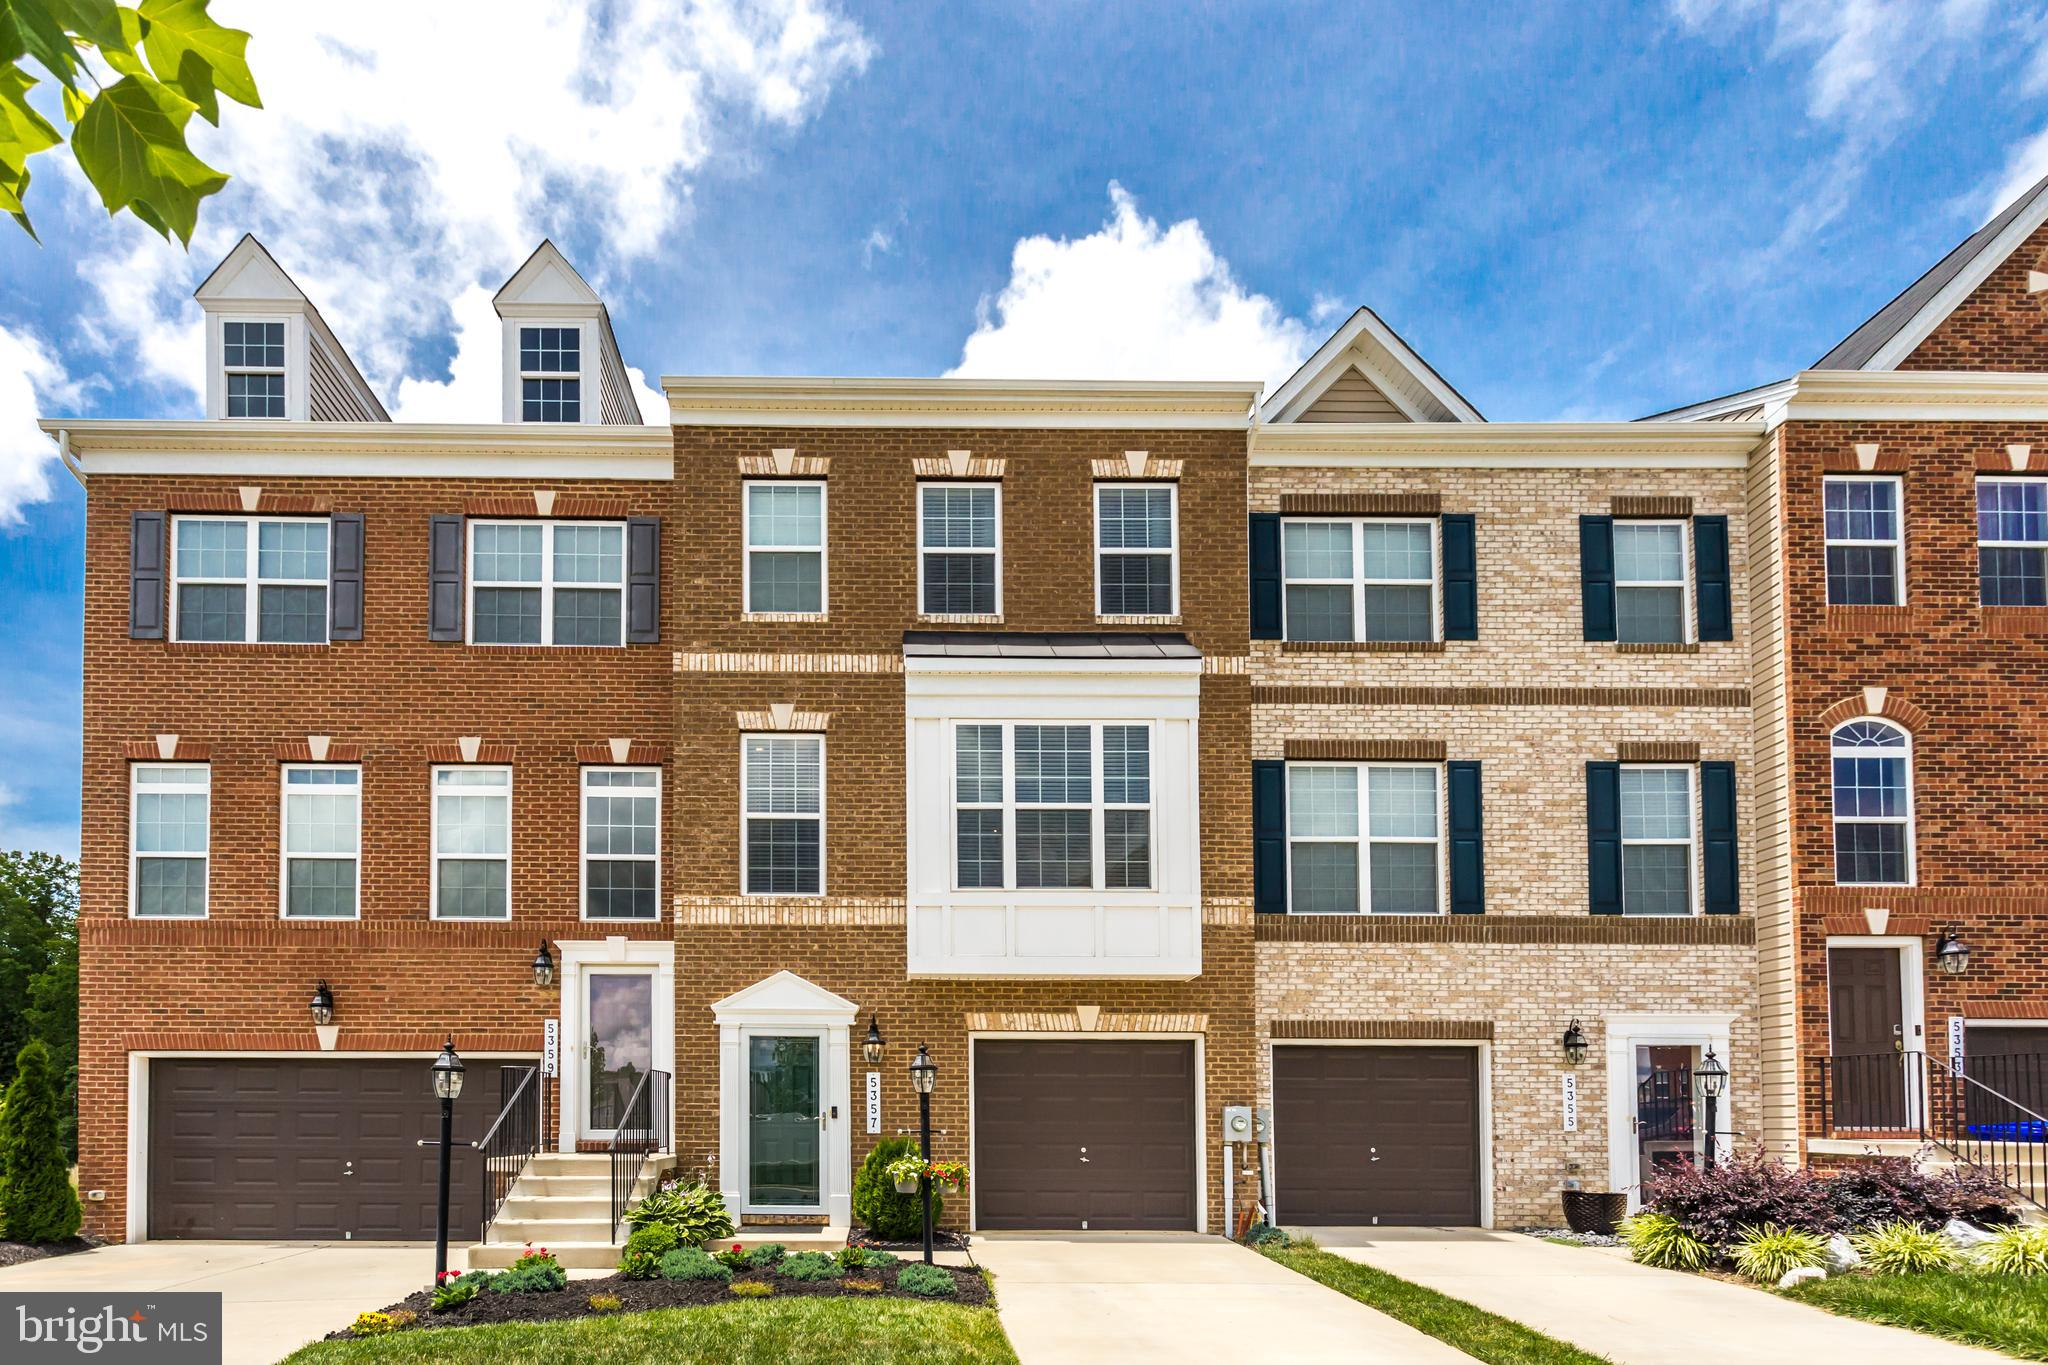 Why wait for new construction when you can move right into this gorgeous 3 level townhome in Gleneag